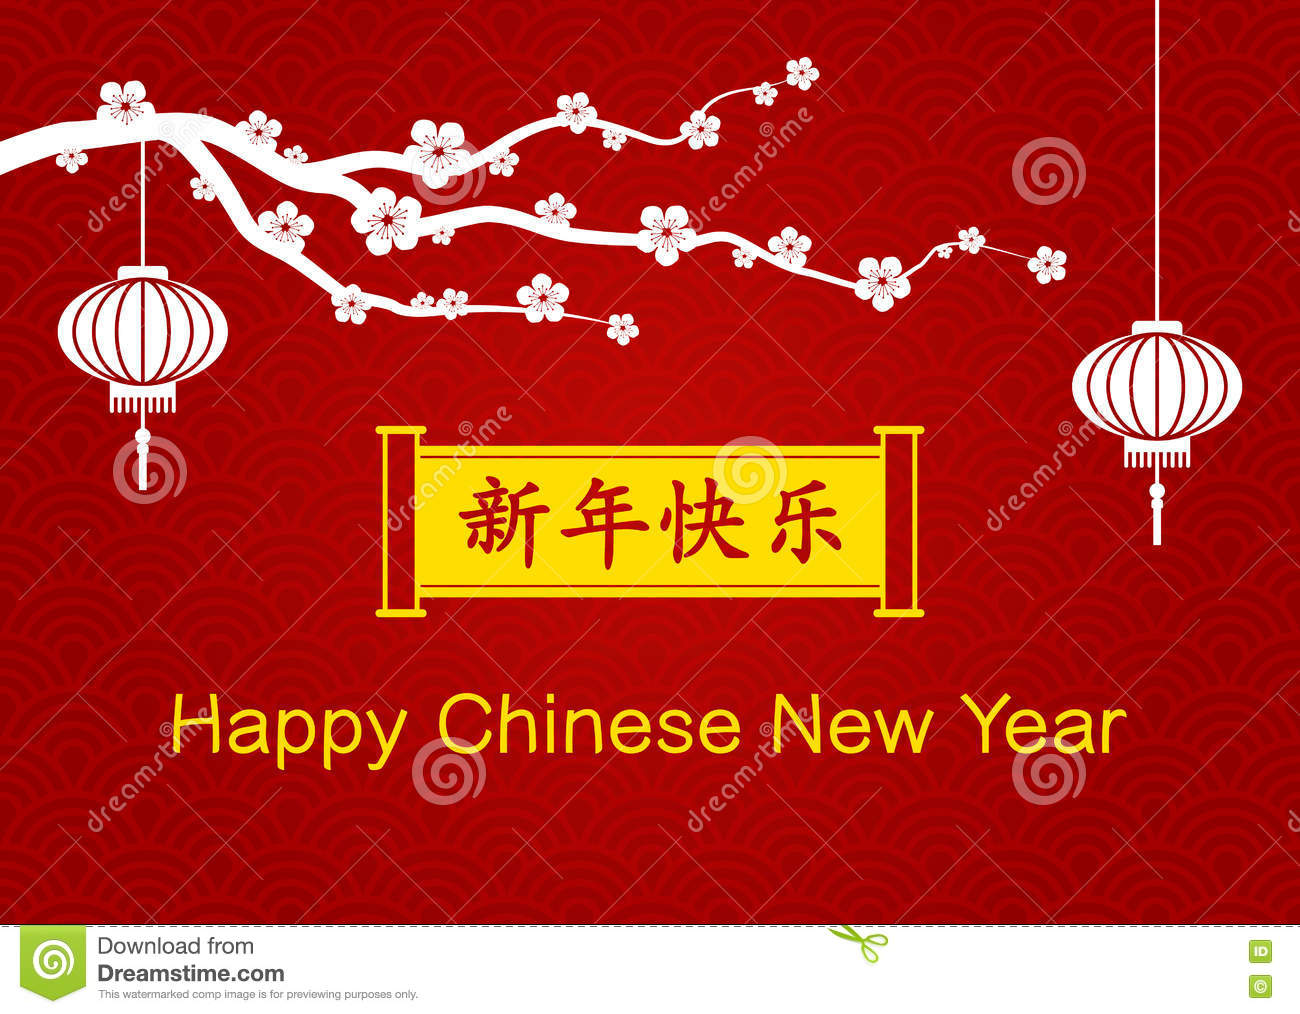 Happy Chinese New Year Greeting Card Display Poster With Lanterns